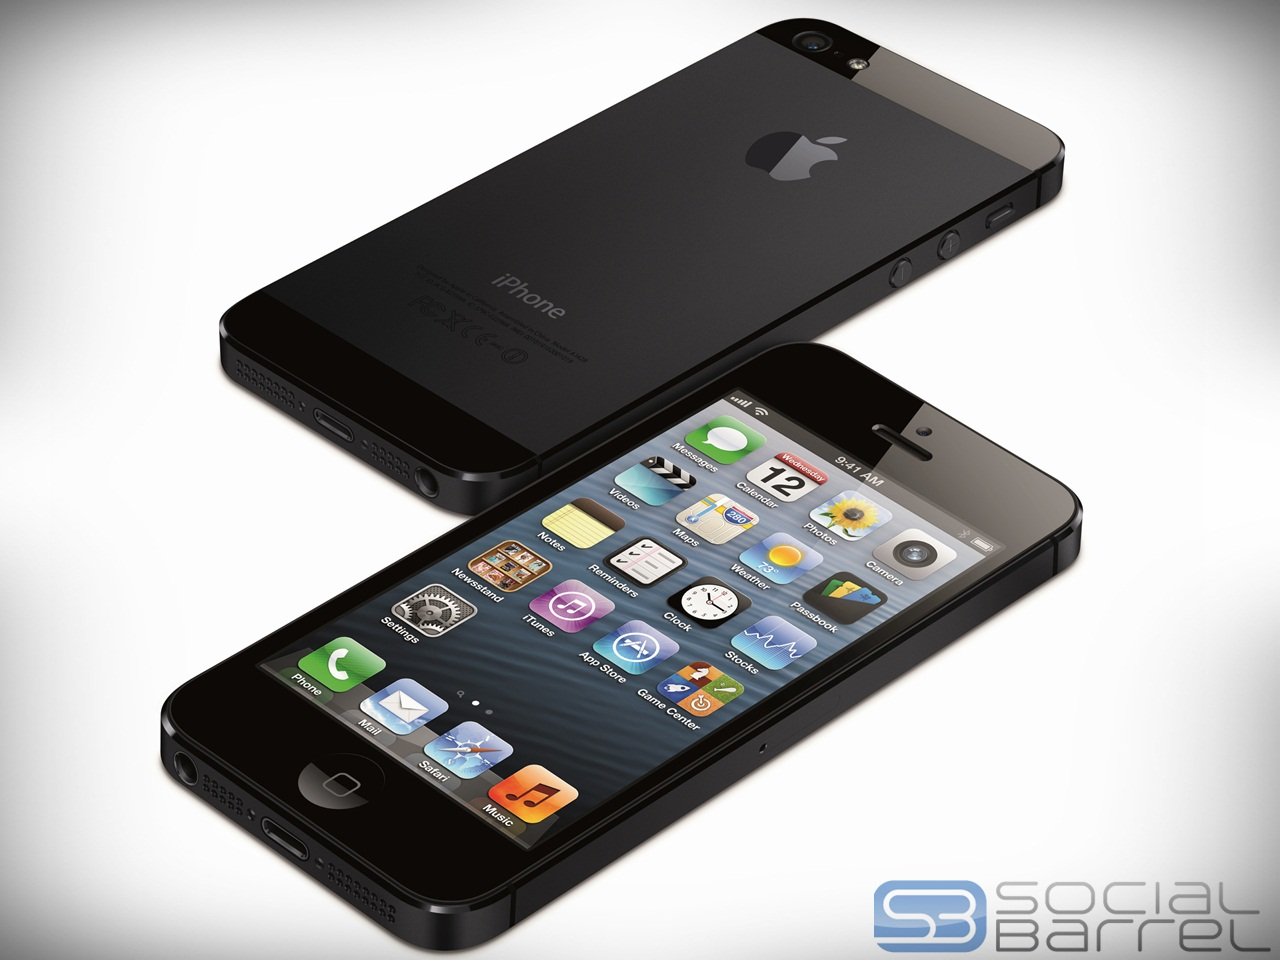 iPhone 5, Galaxy S III, RAZR M, iPhone 4S, iPhone 4, iPhone 3GS, iPhone 3G, iPhone, benchmarks, Motorola, Samsung, Apple, Browsermark, GUIMark, sunspider, GeekBench, results,